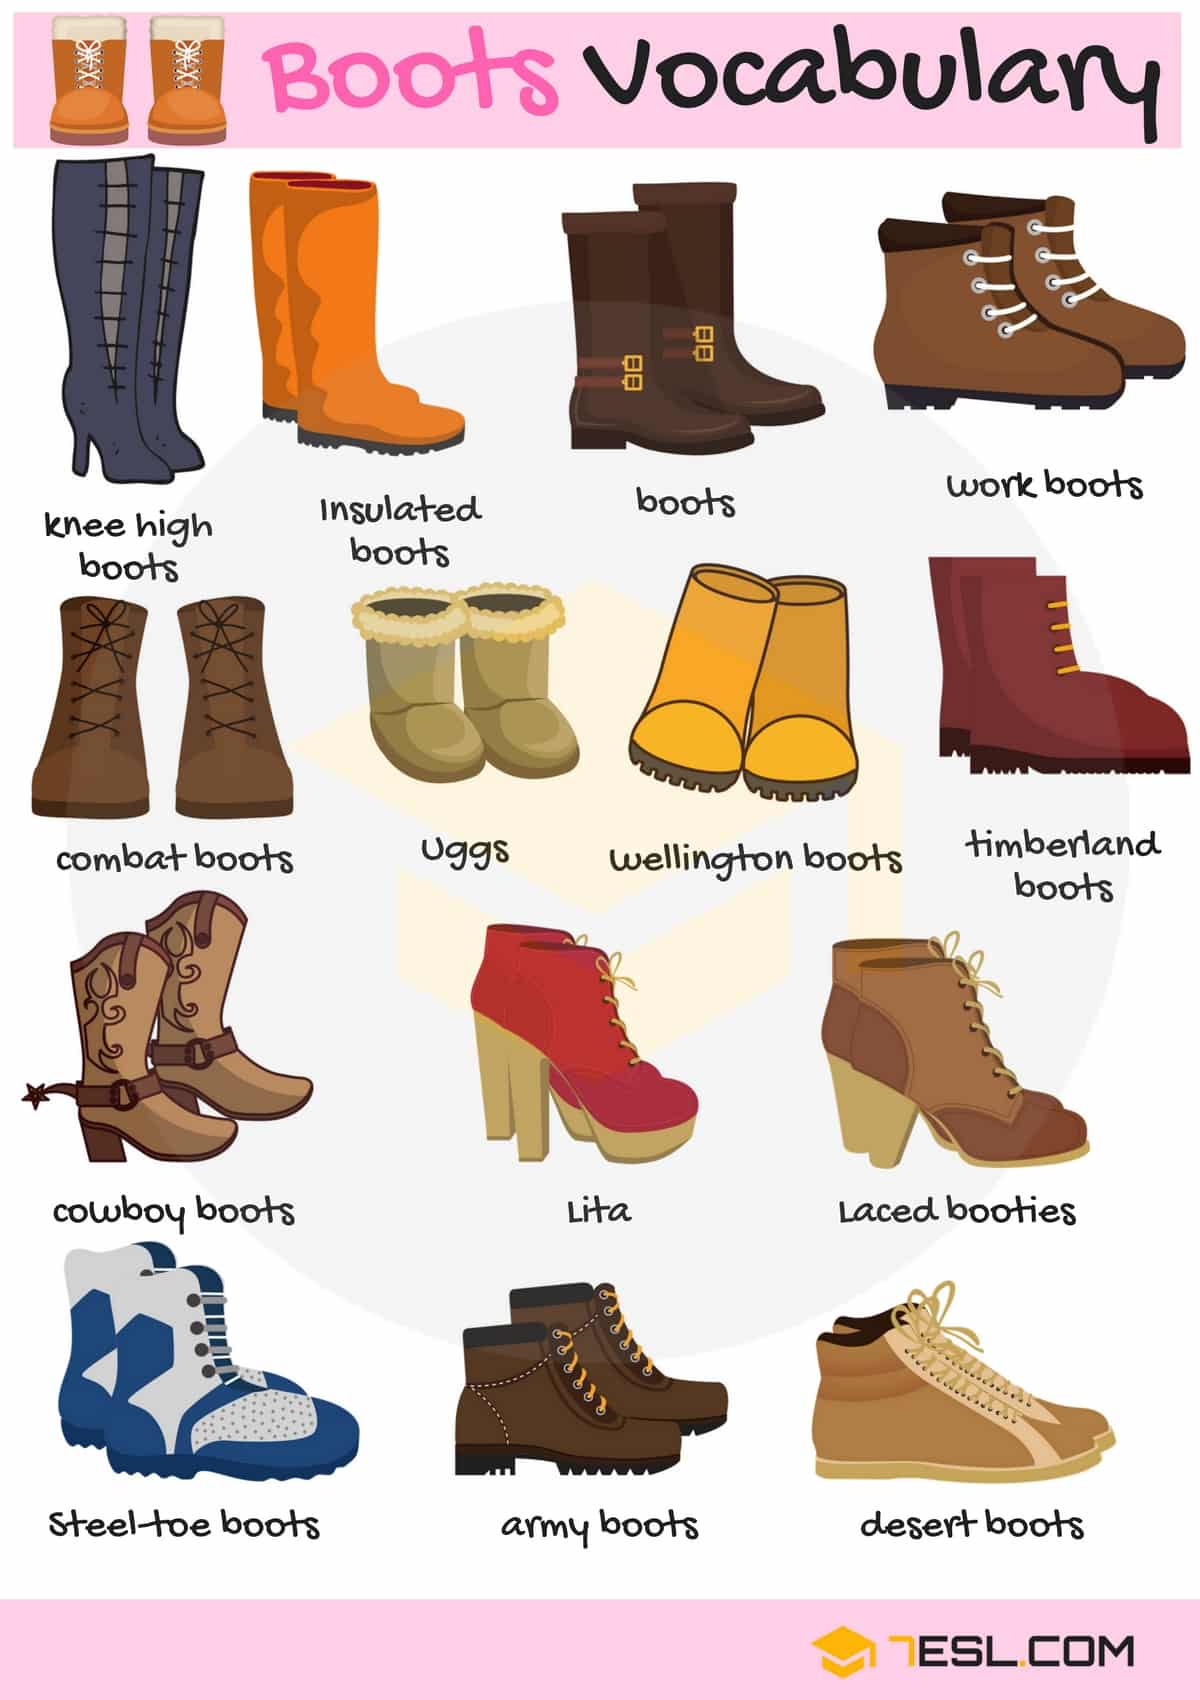 Boots Vocabulary | Image